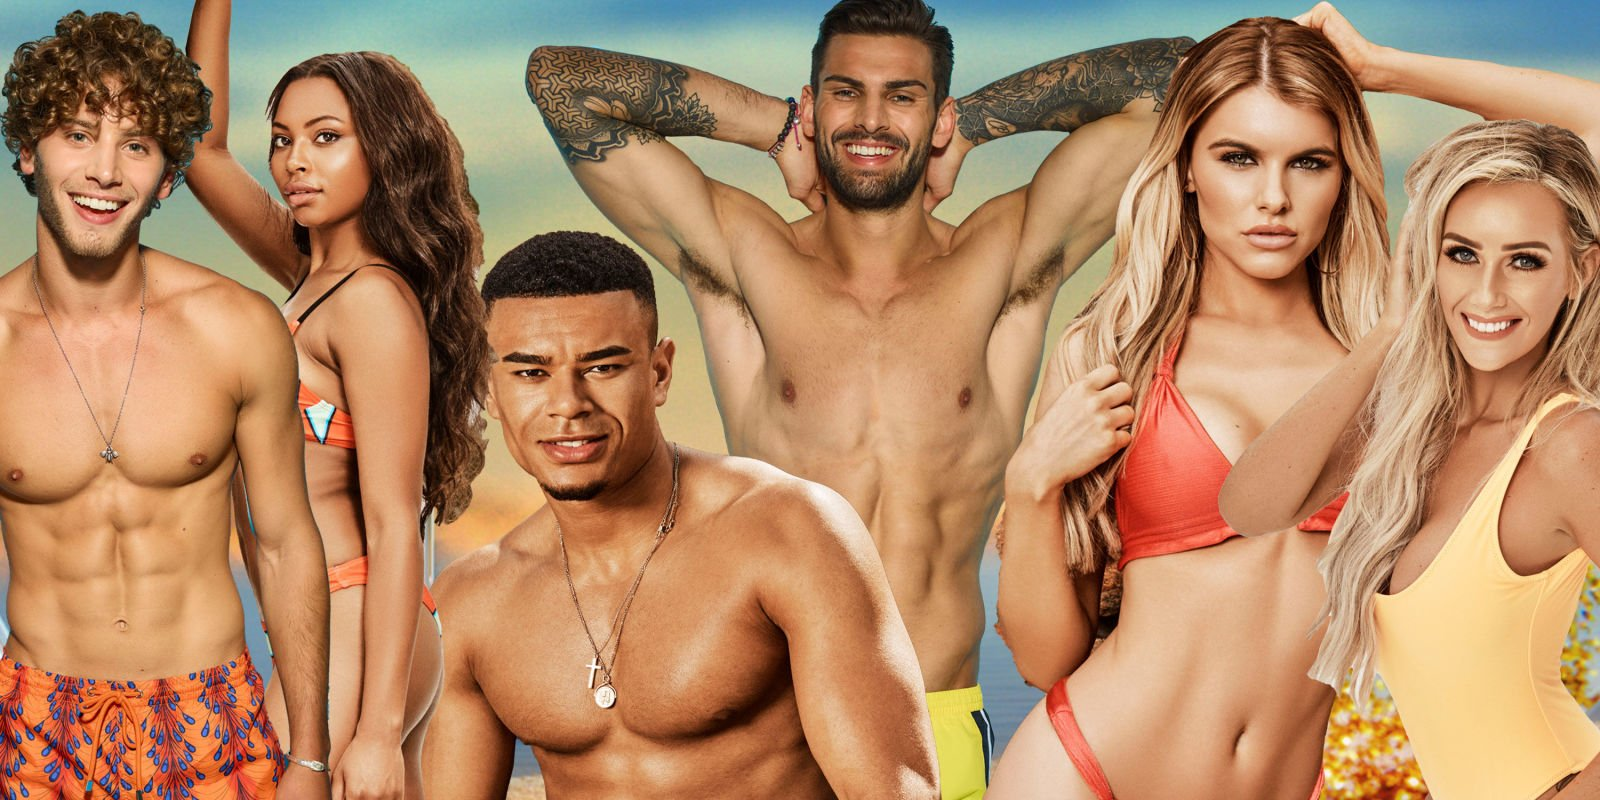 You know what Love Island needs? Islanders with 'real' bodies